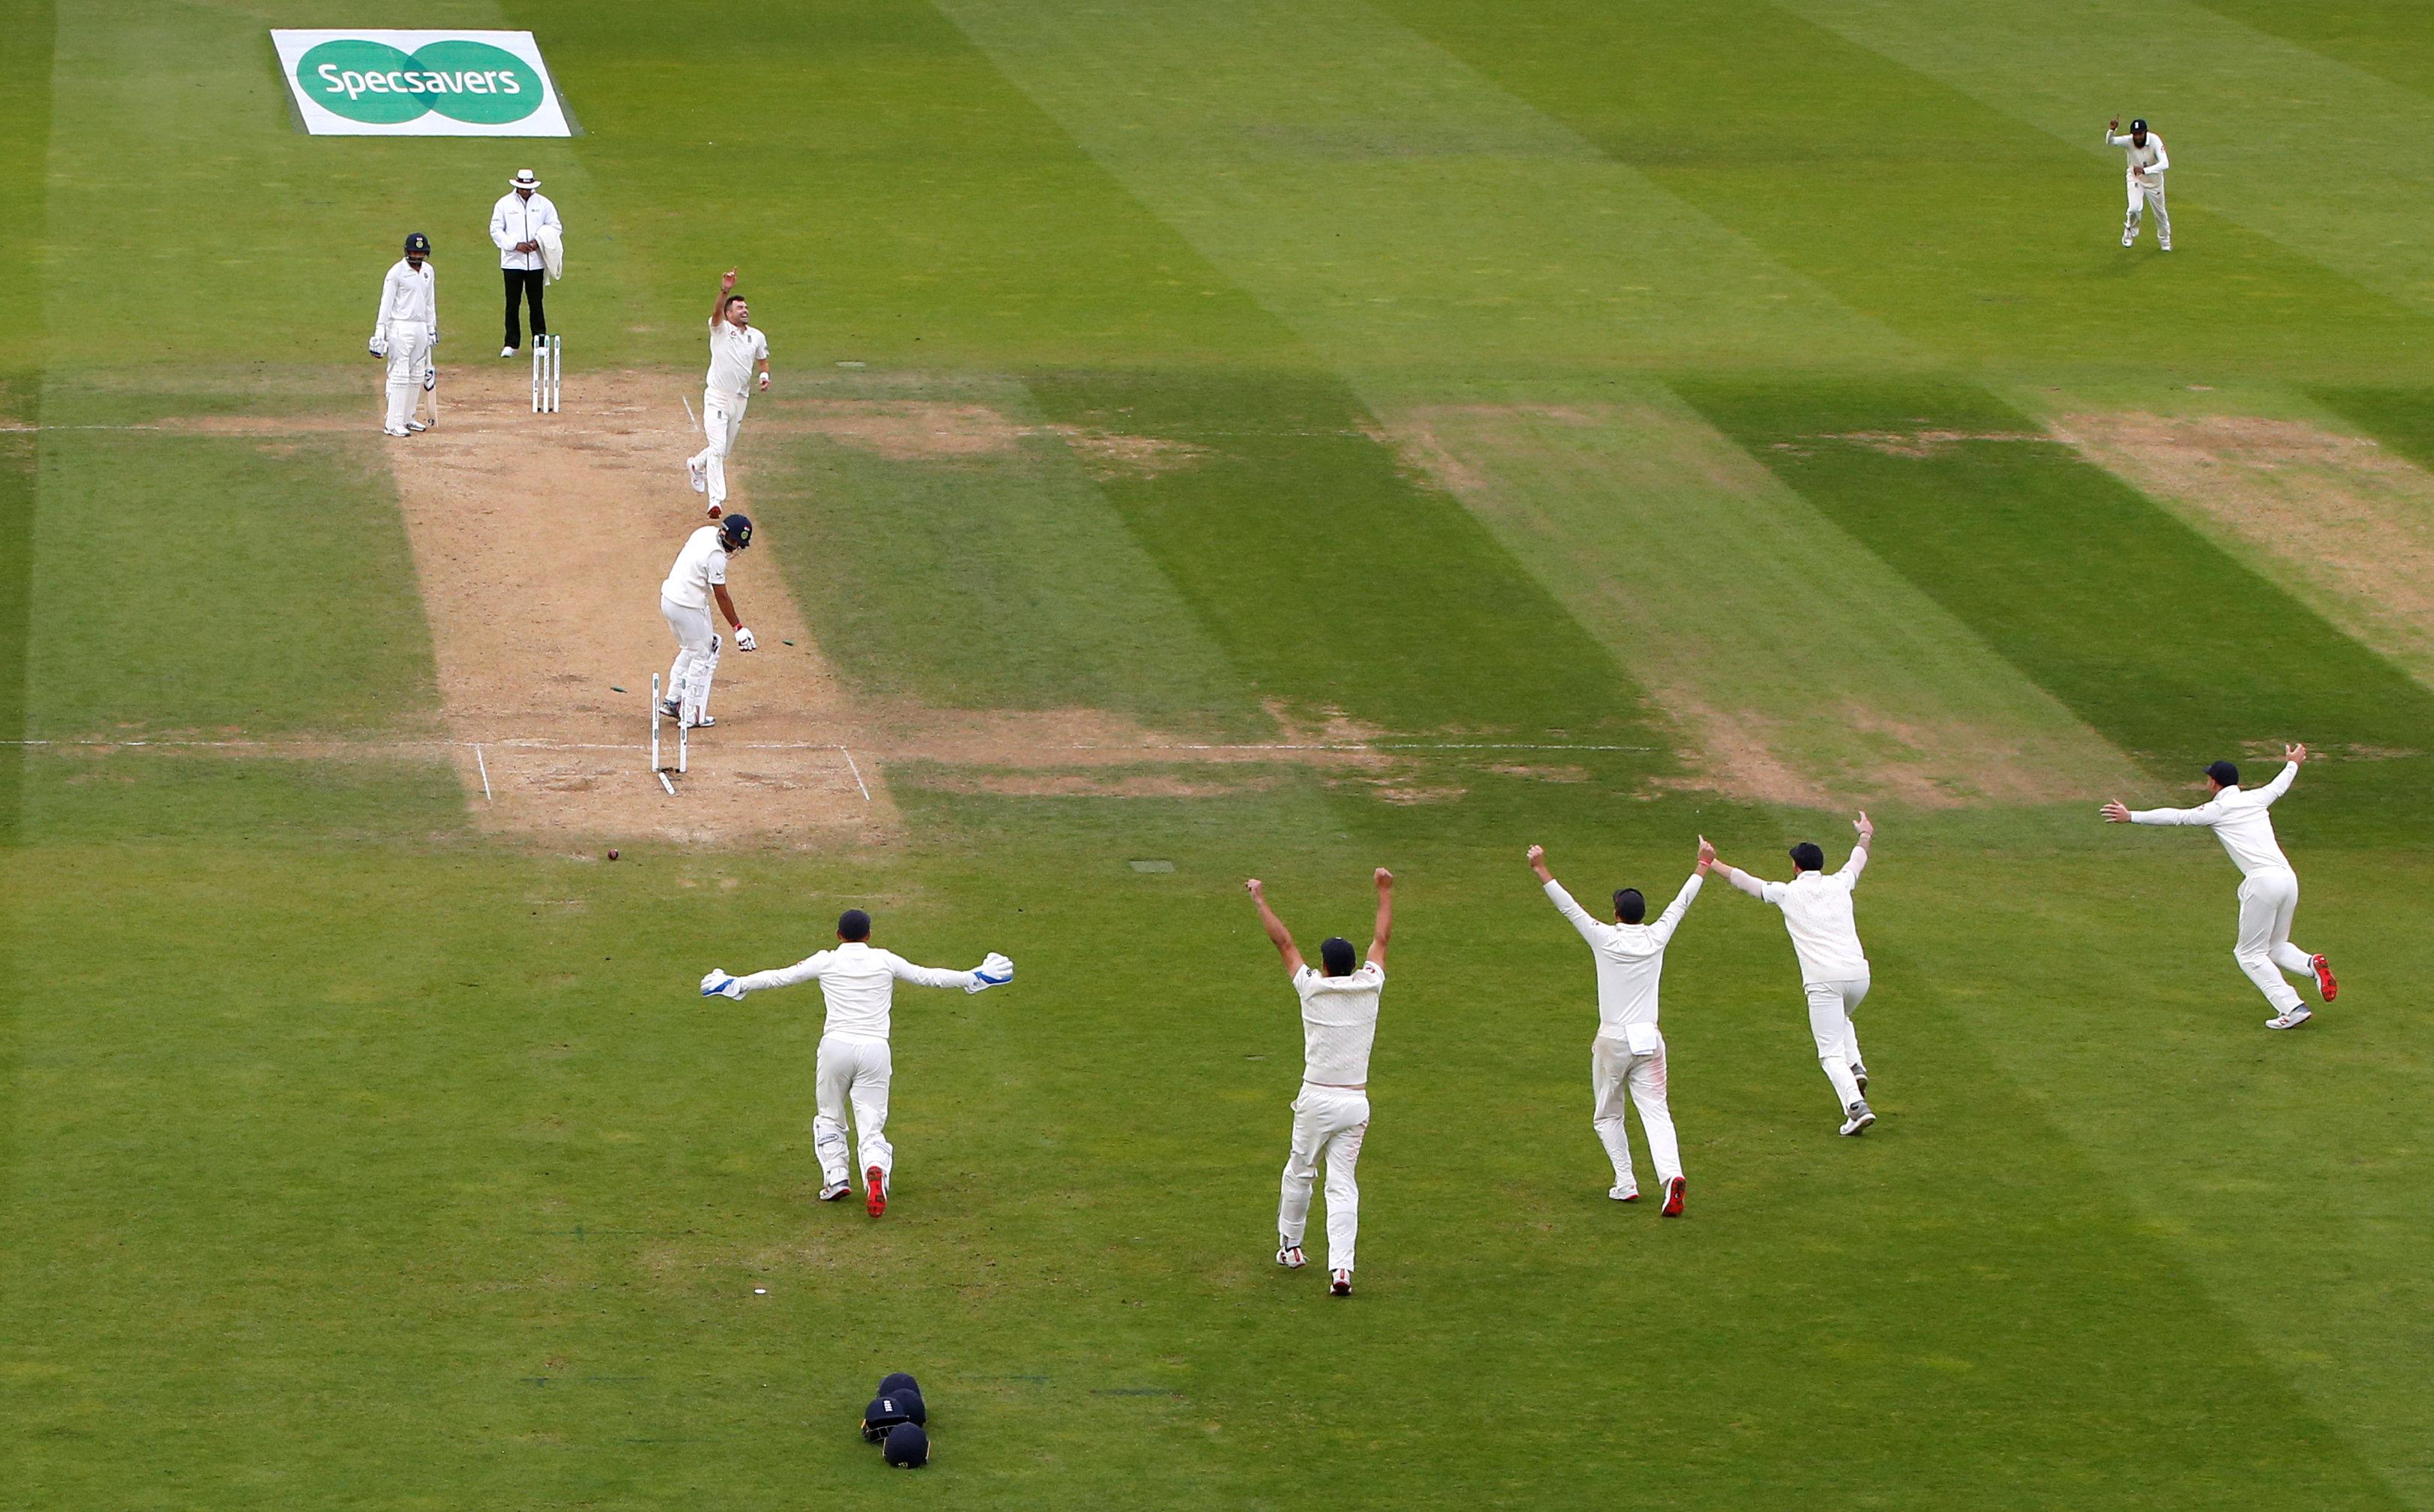 England won the fifth Test by 118 runs